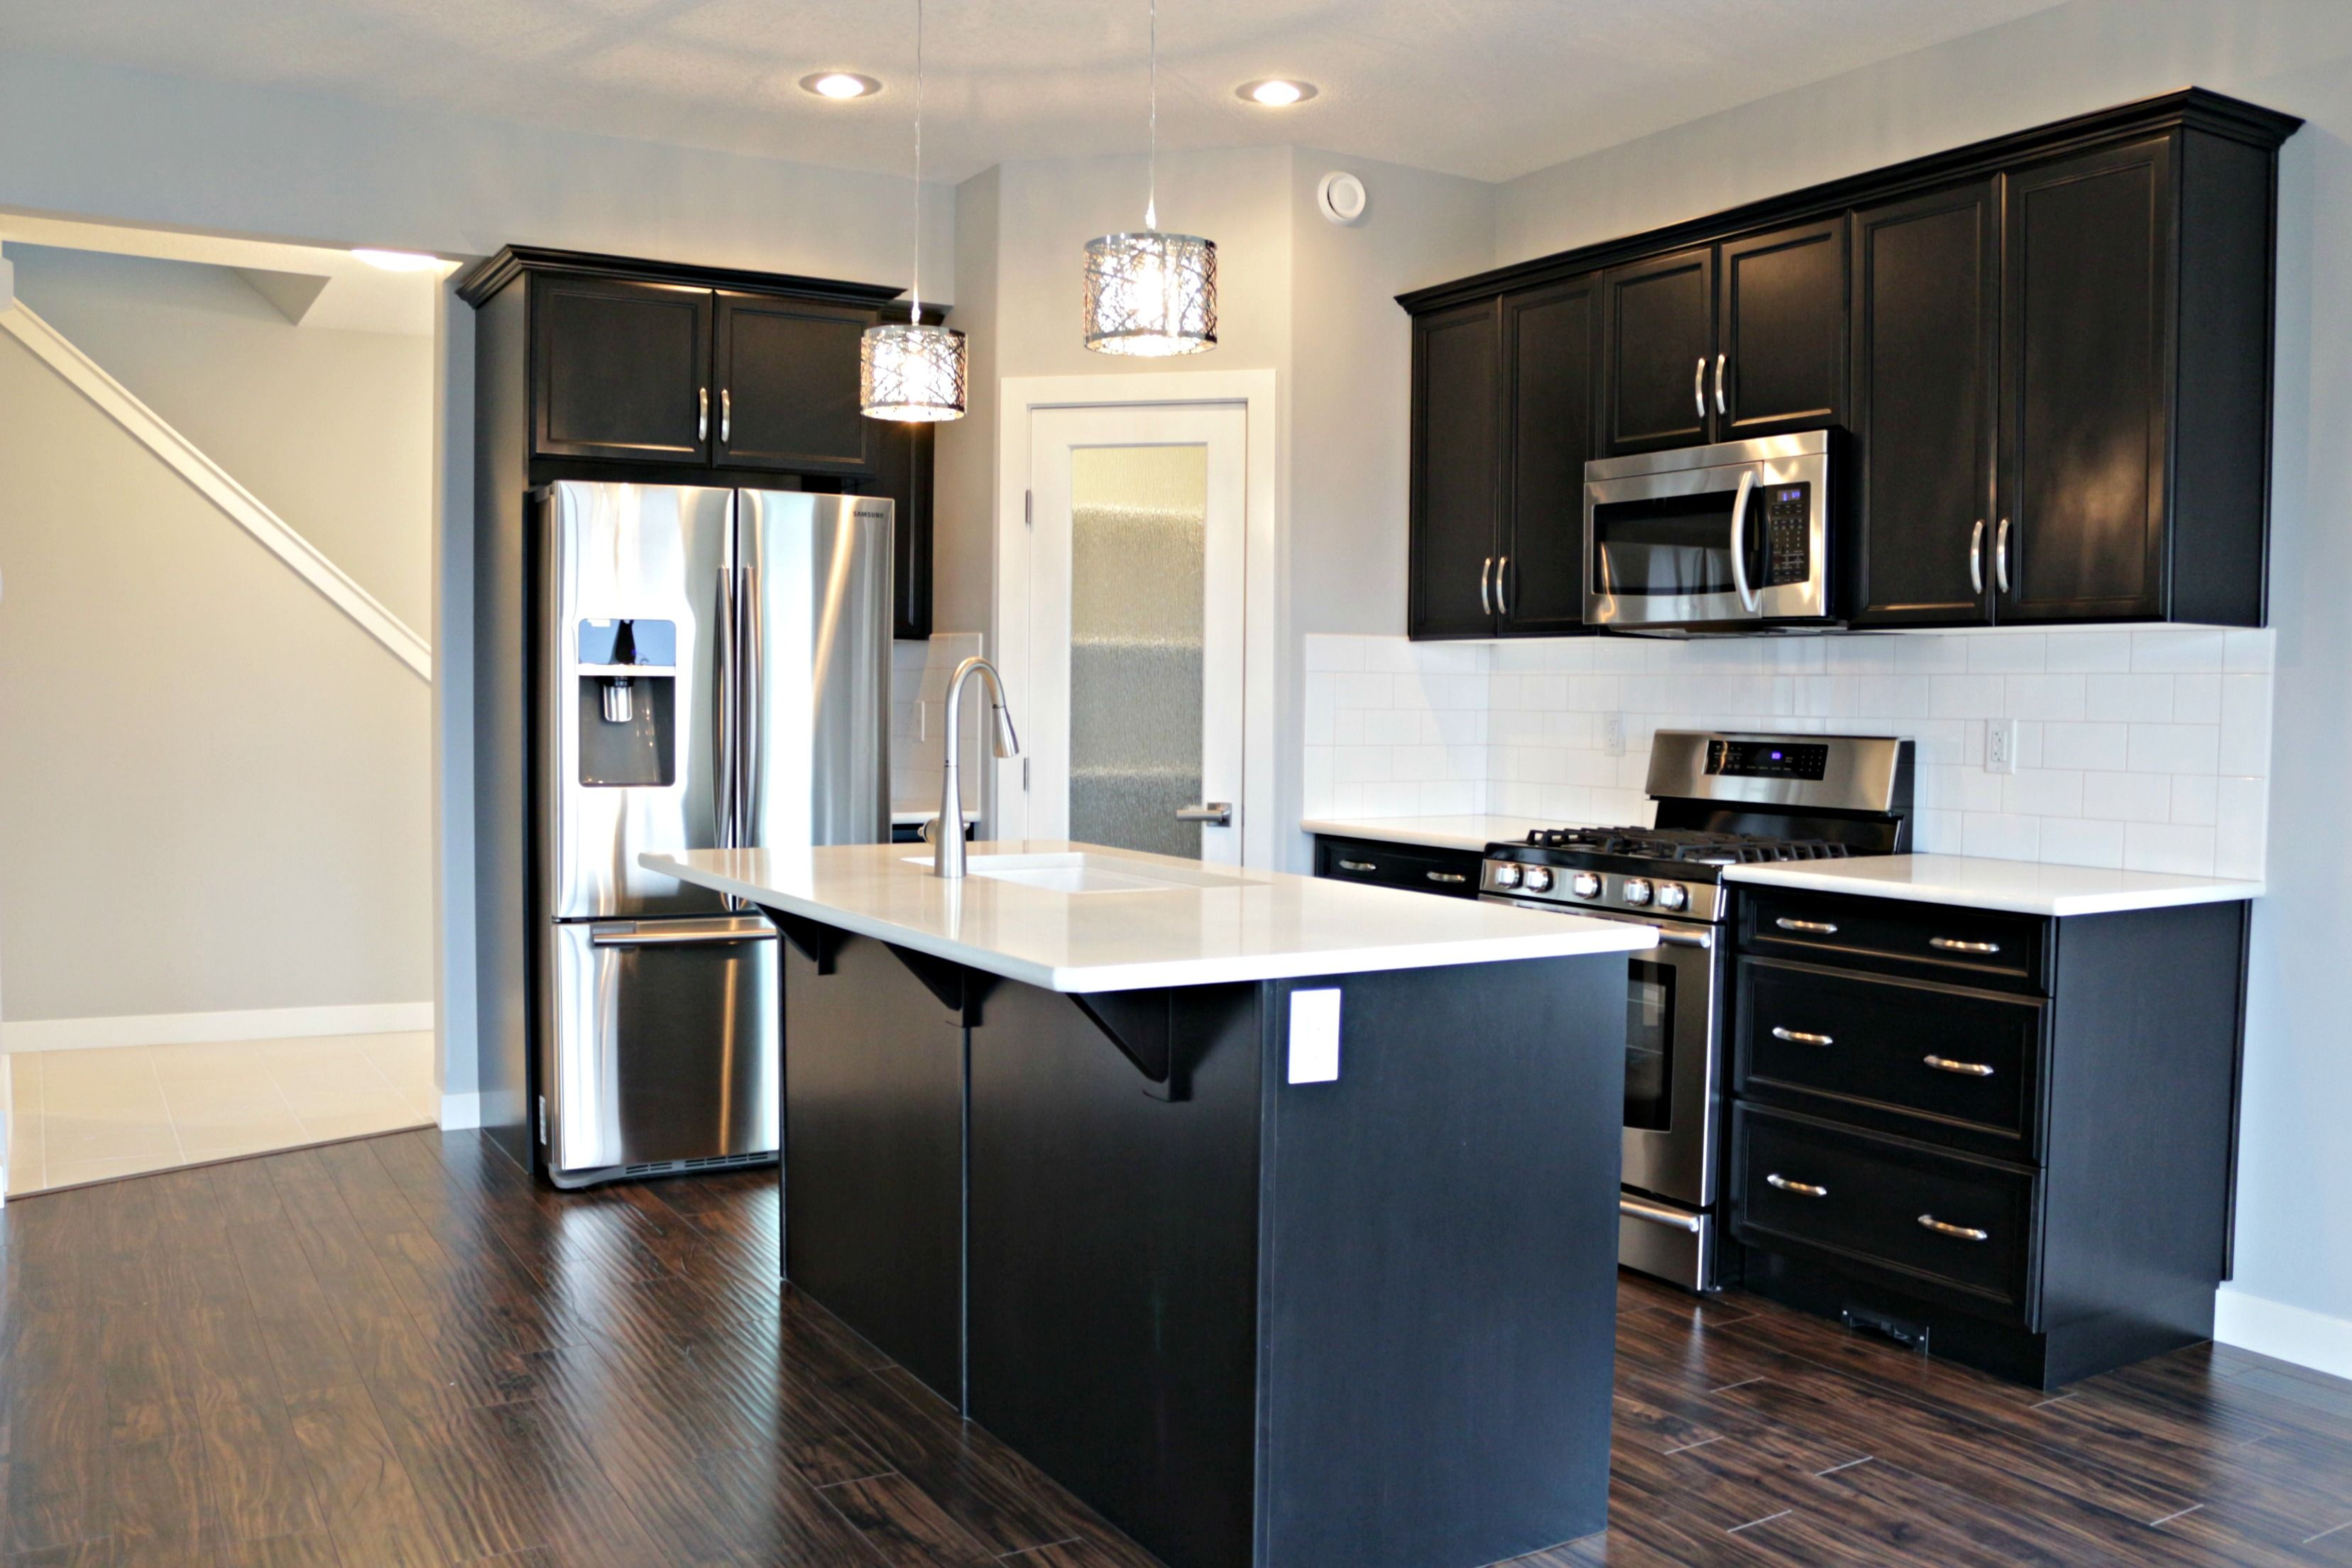 Kitchen Open Plan With Dark Cabinet: Open Concept Kitchen, Dining, And Livingroom With Dark